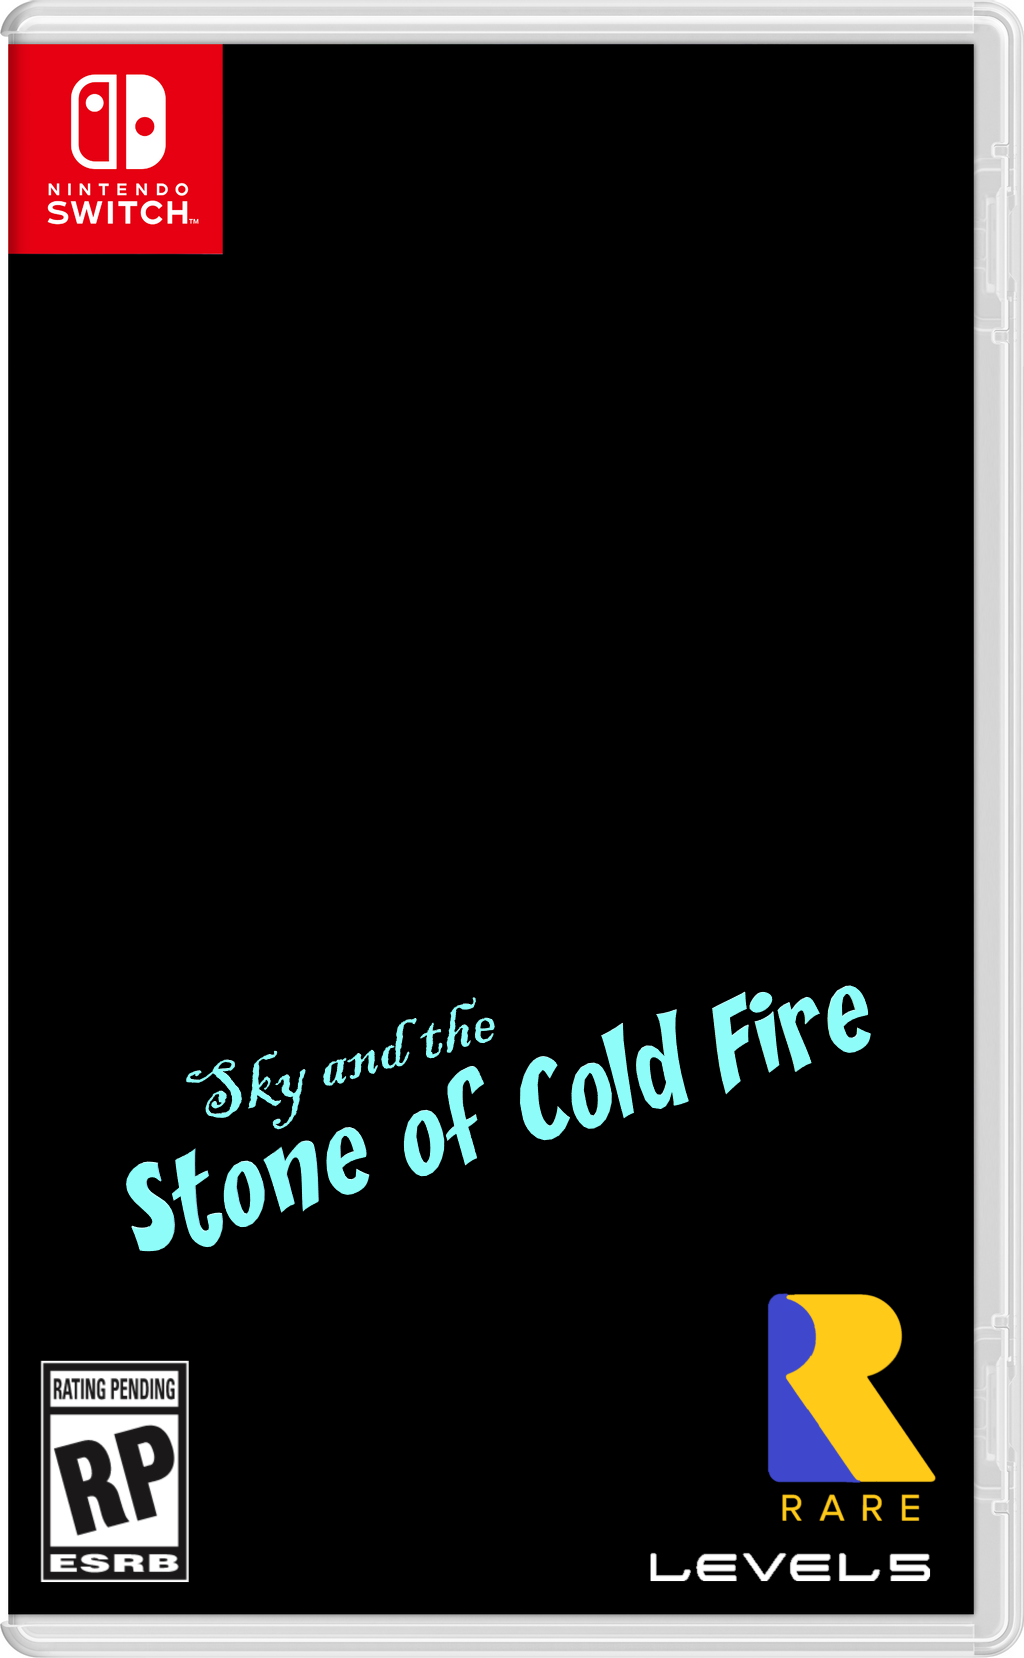 Sky and the Stone of Cold Fire